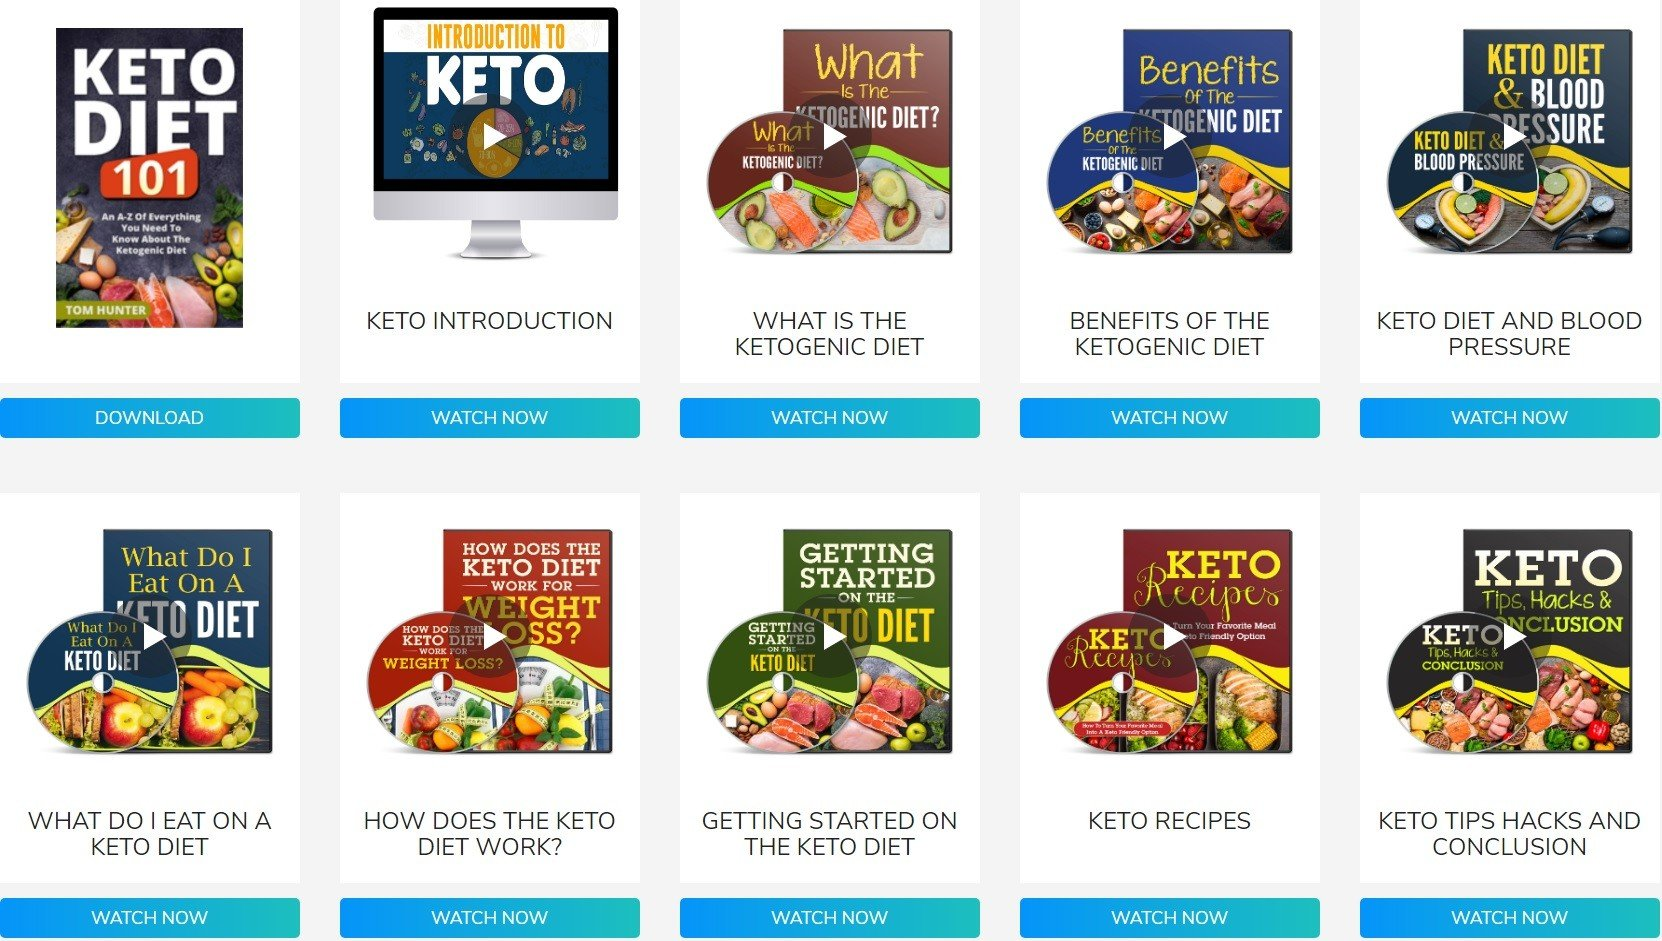 Custom Keto Diet Savings Coupon Code